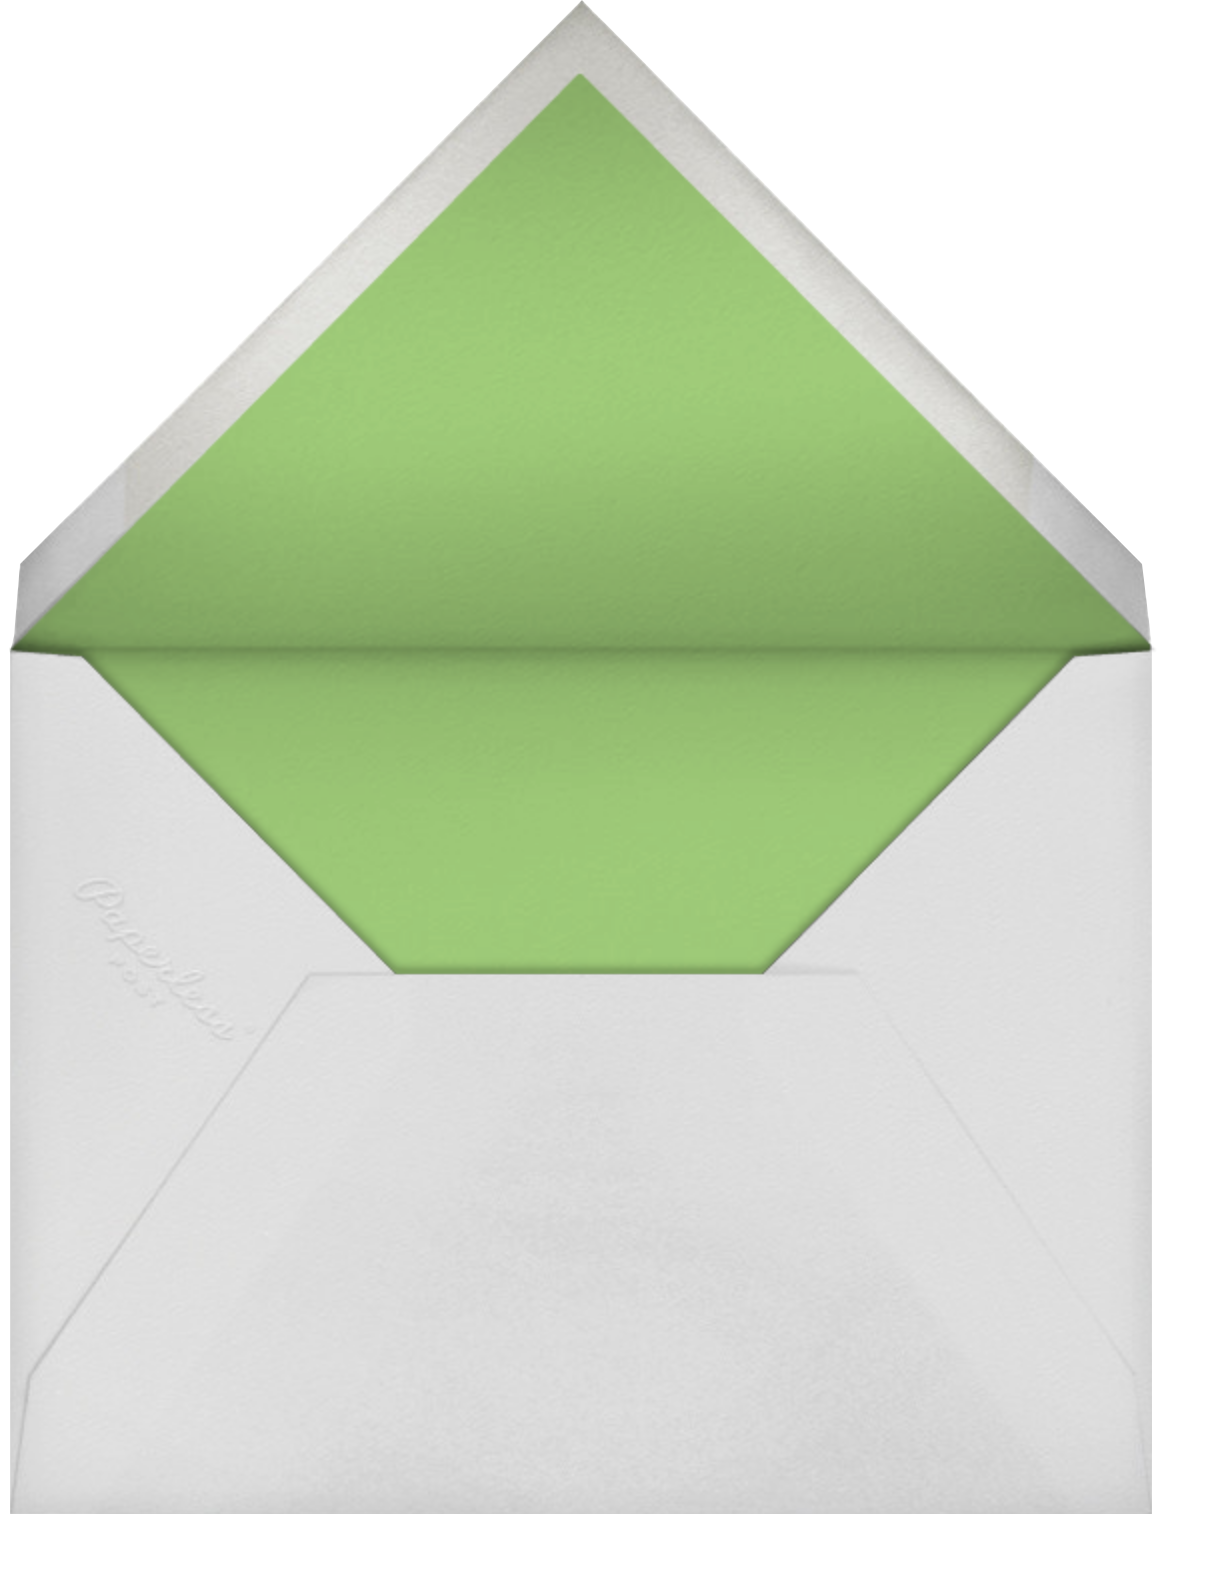 Parterre (Thank You) - Spring Green & Pewter Gray - Crane & Co. - Personalized stationery - envelope back